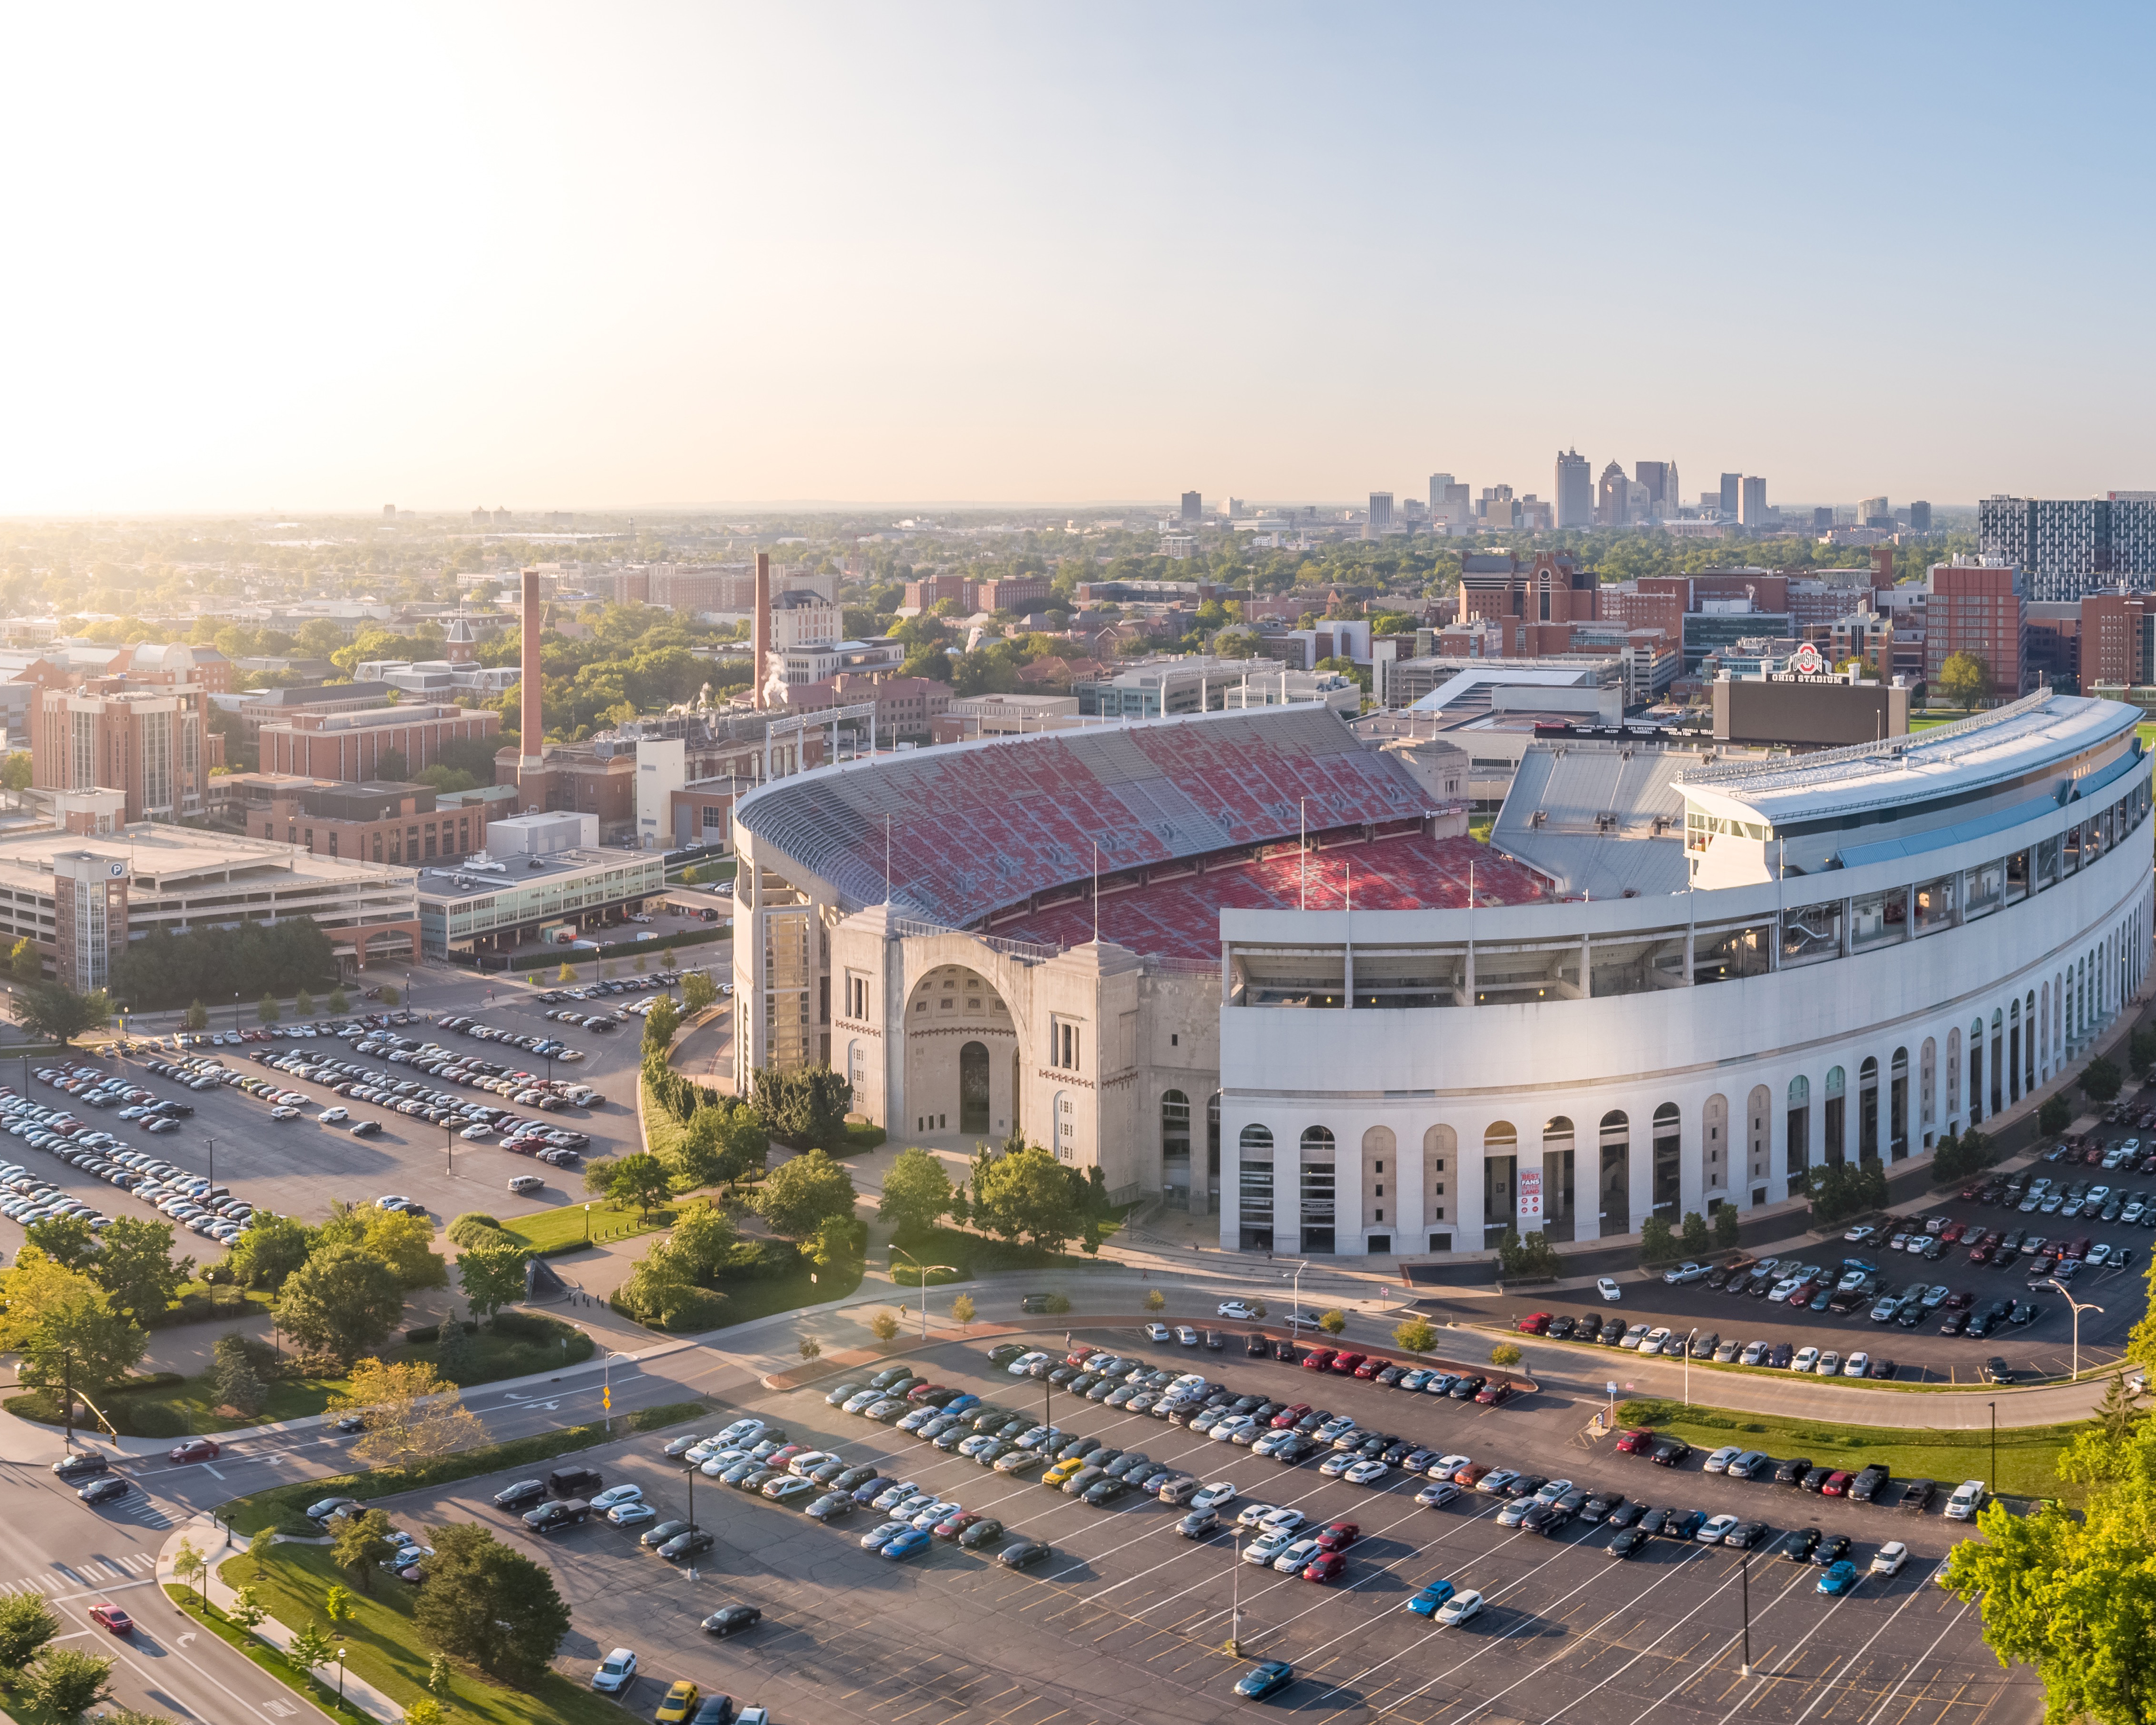 Aerial scene of Ohio state university stadium and parking lot